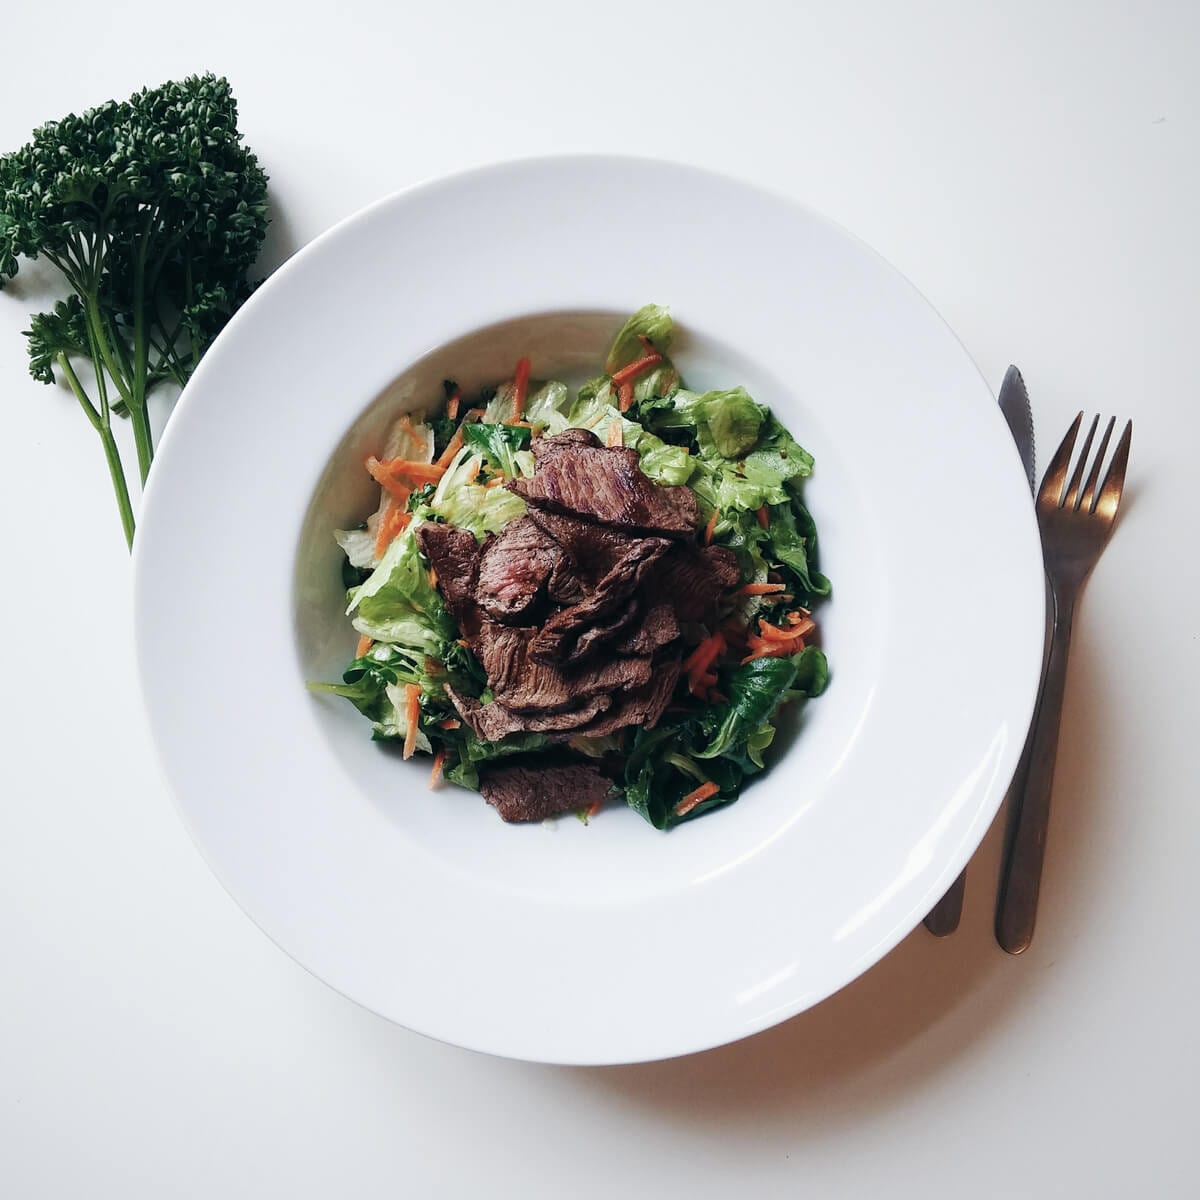 bowl with salad and sliced cooked beef, fork and knife, herbs